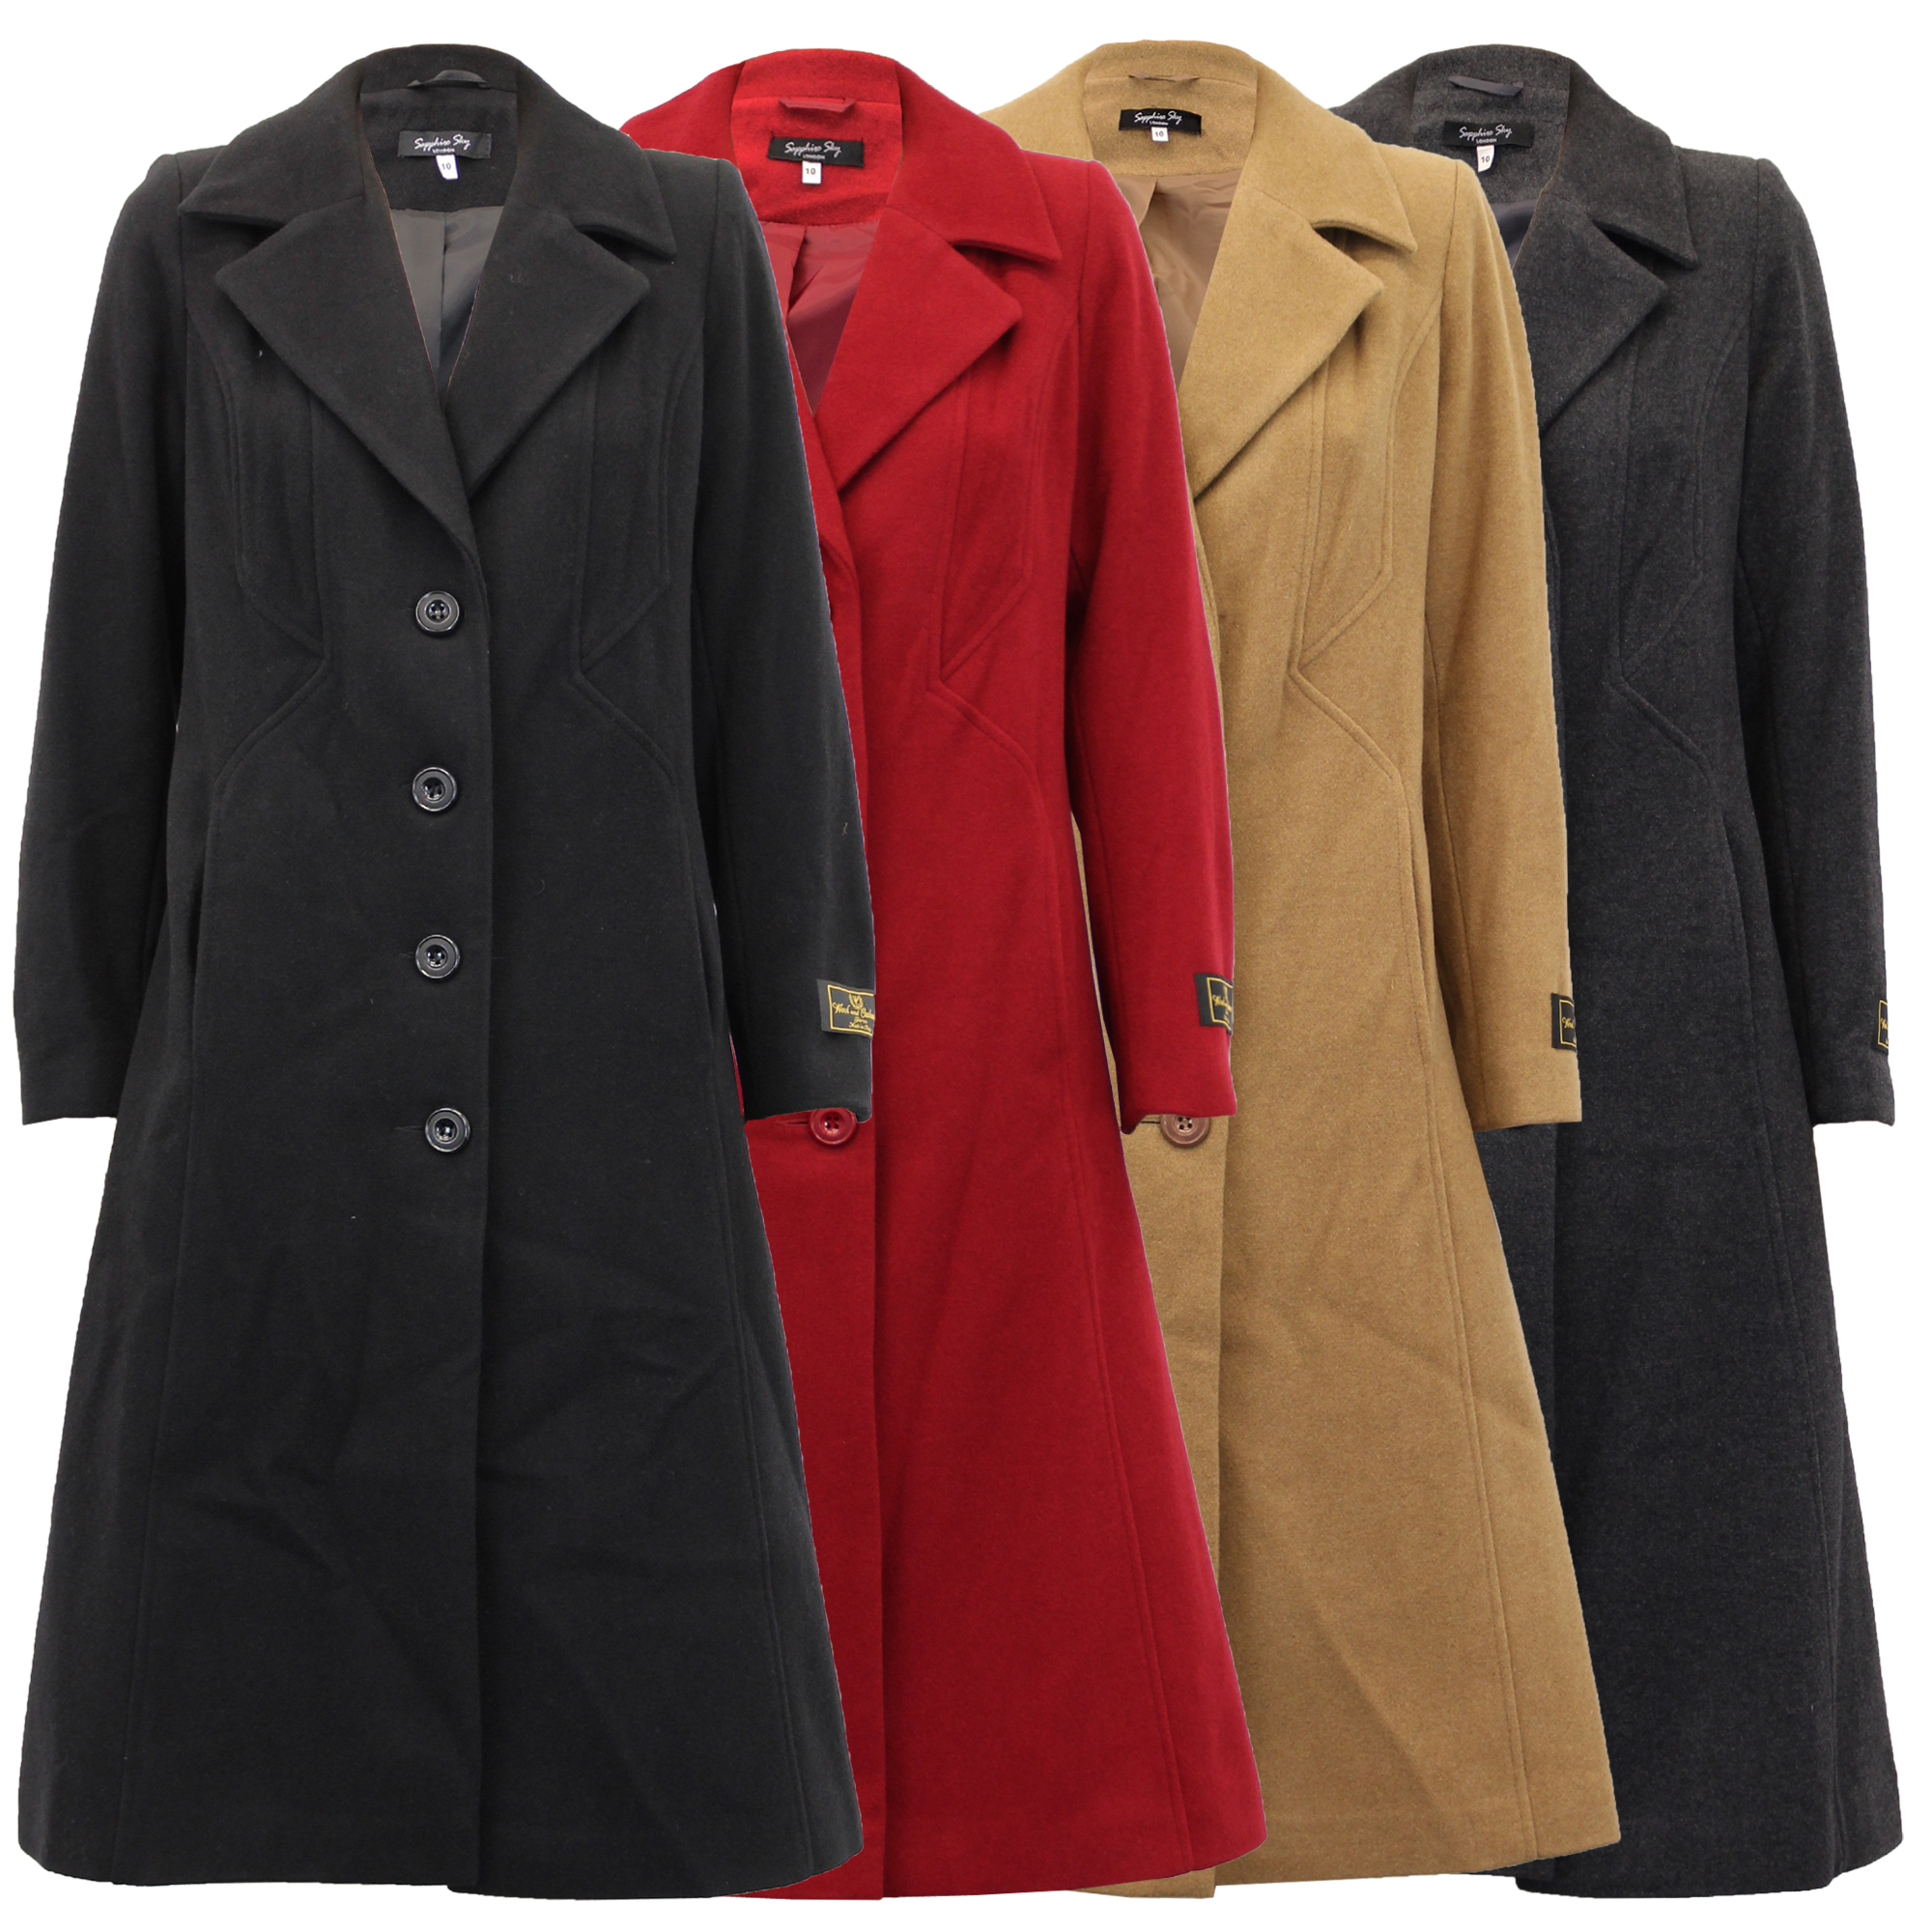 25cb0e81e616 Ladies Wool Cashmere Coat Womens Jacket Long Fashion Warm Casual ...